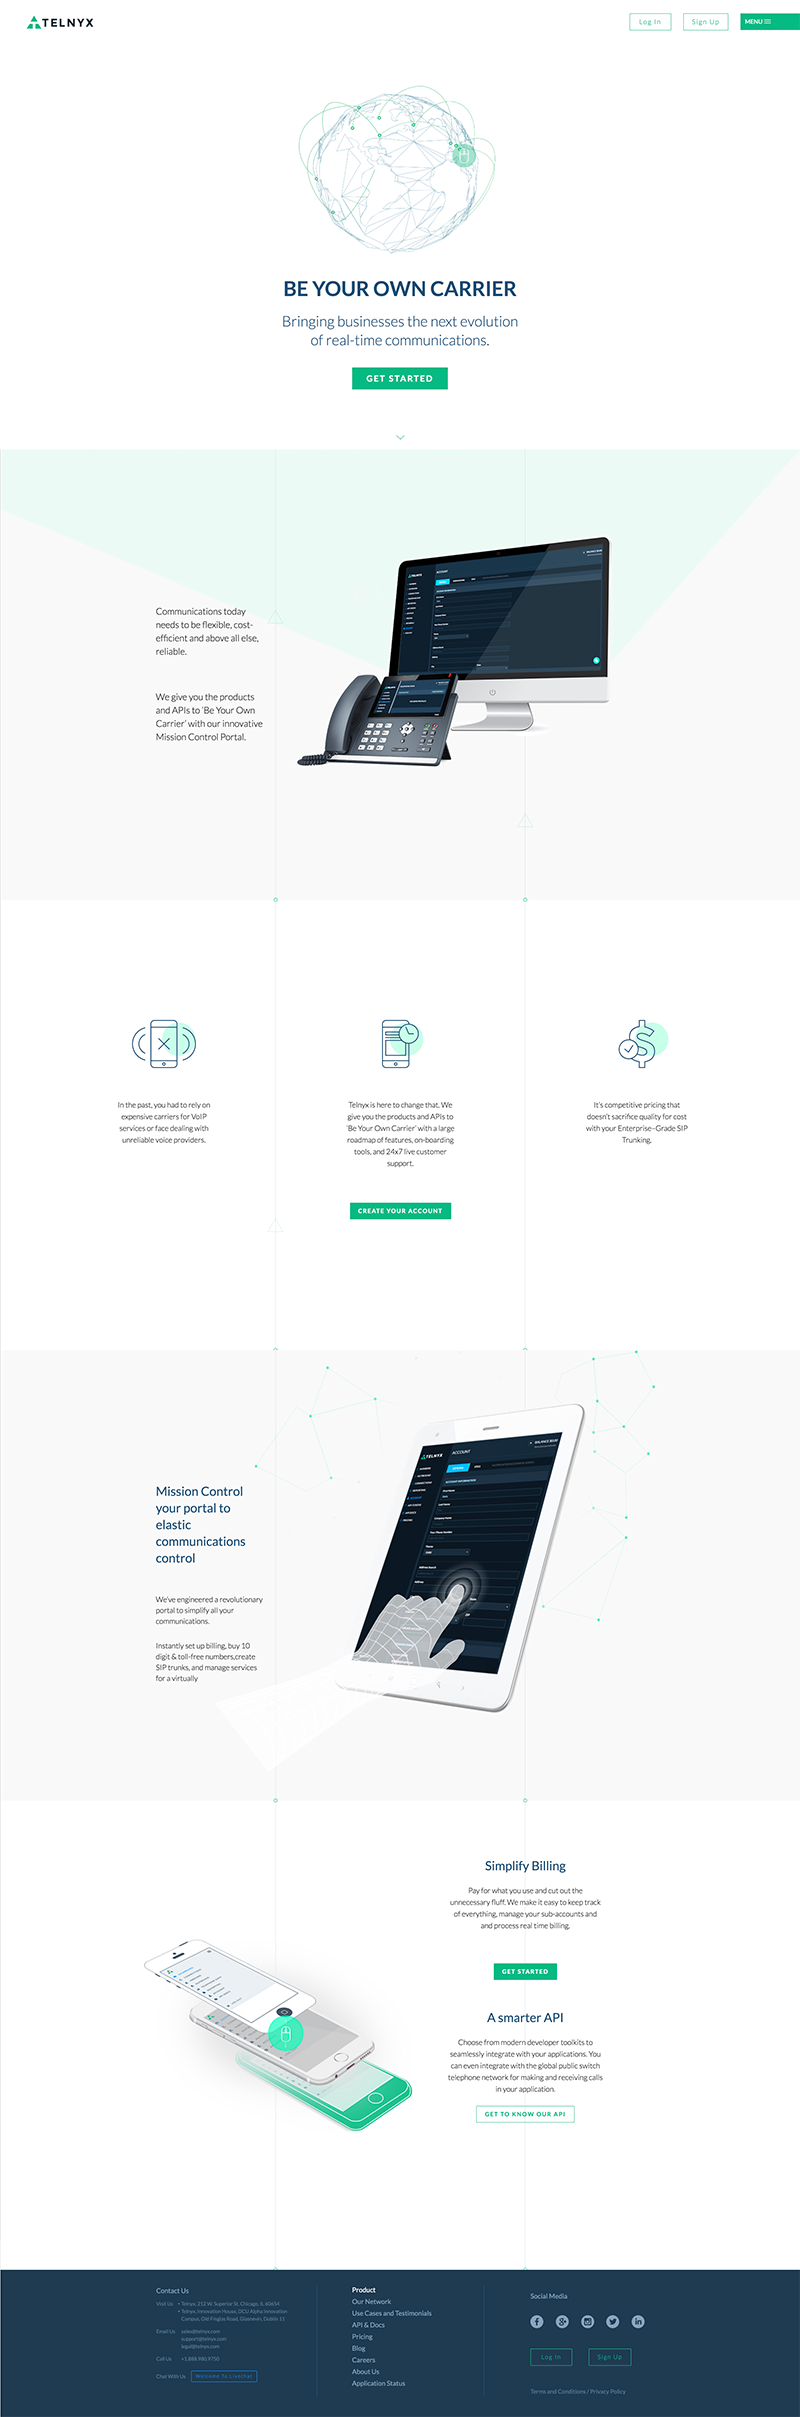 Telnyx Web Design